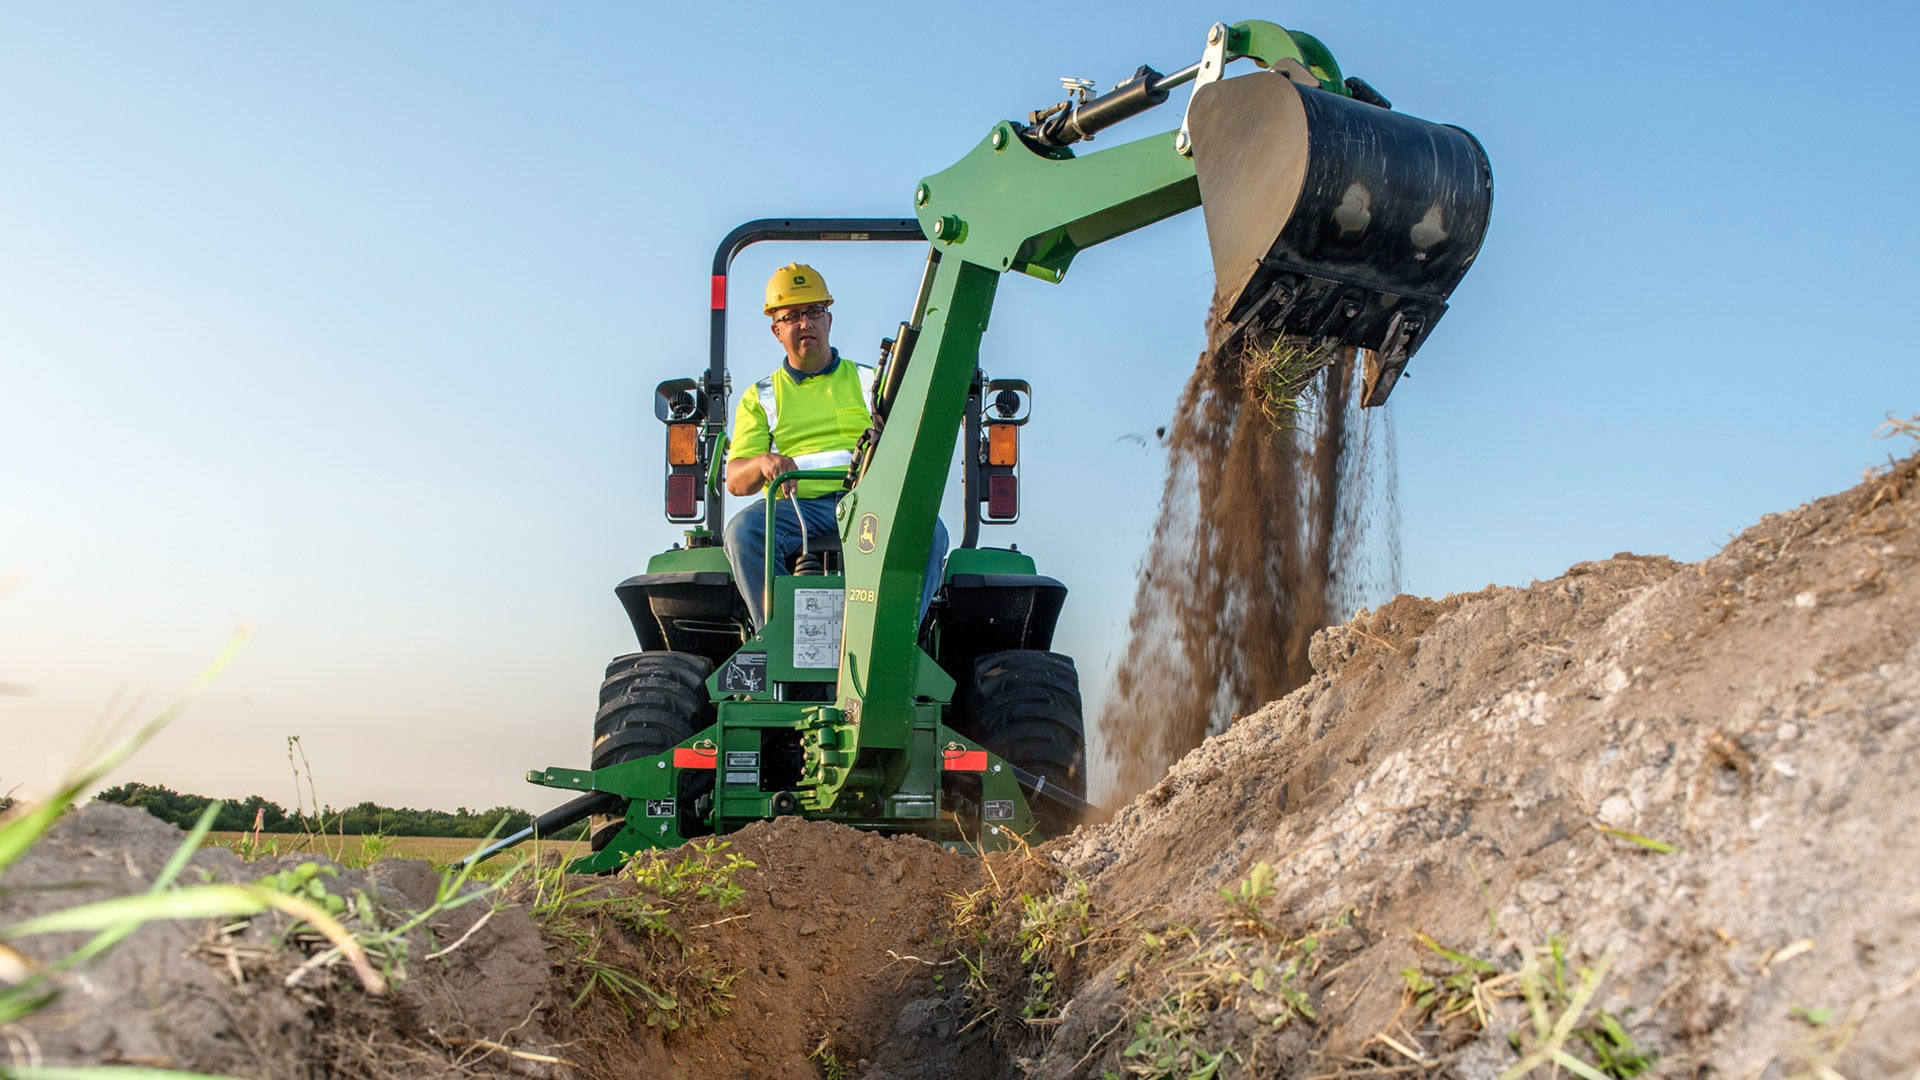 Learn more about the 270B Quick-Tach Backhoe